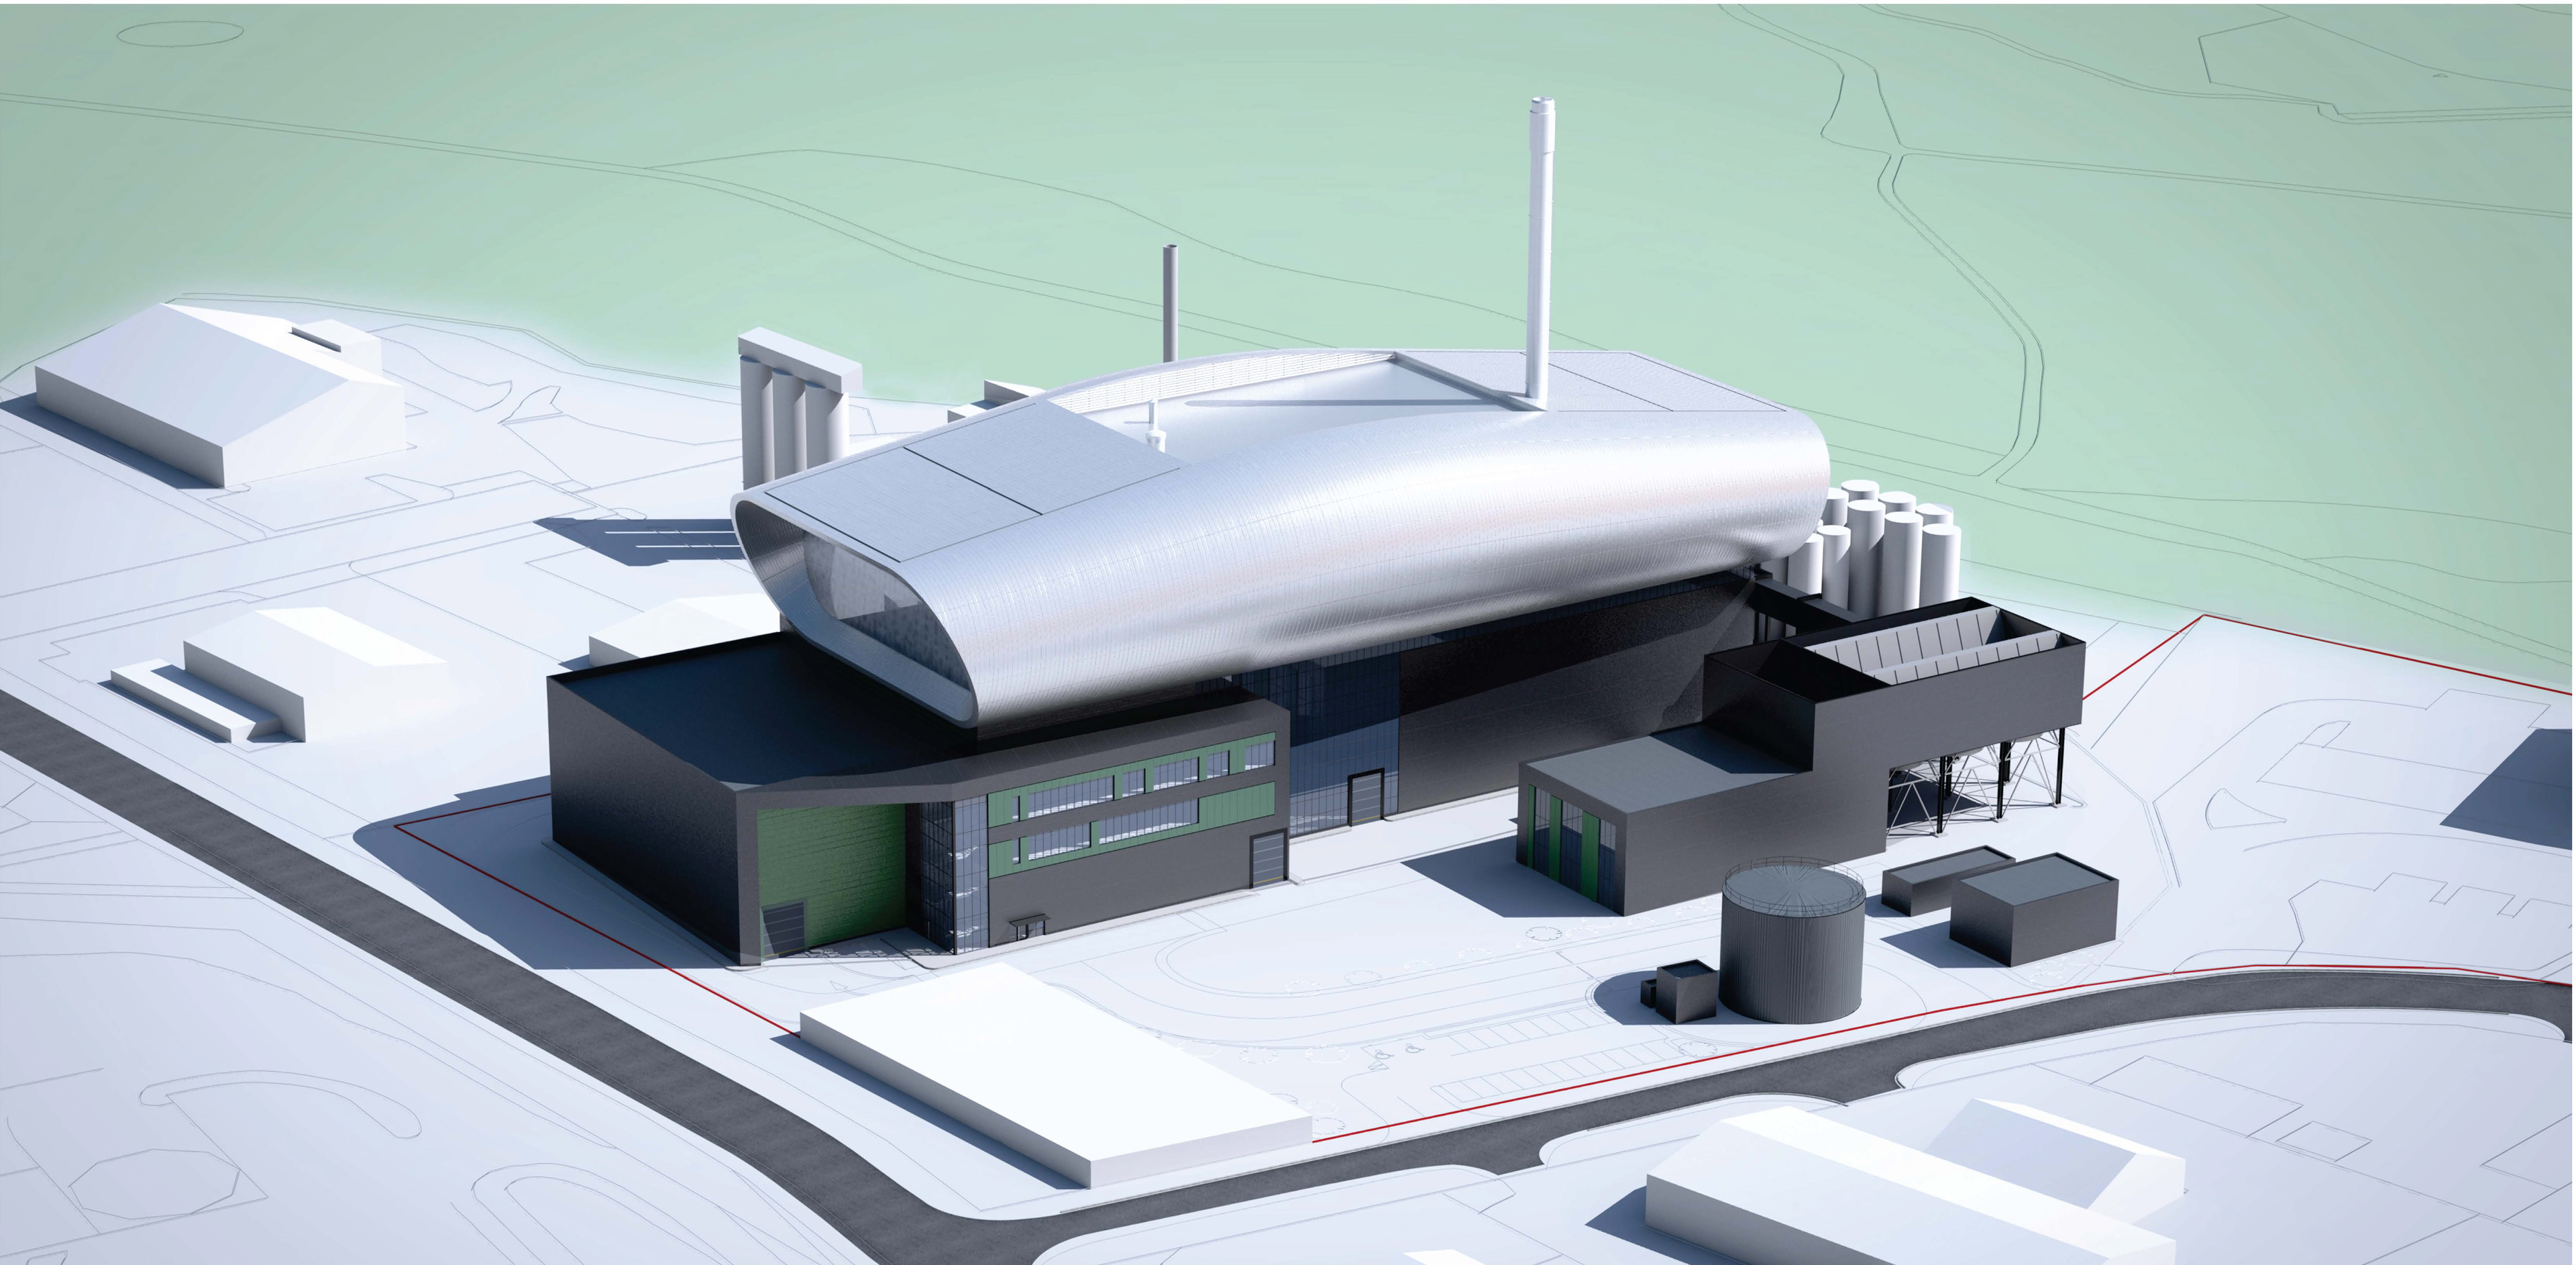 Artist's impression of the what the facility could look like when built.